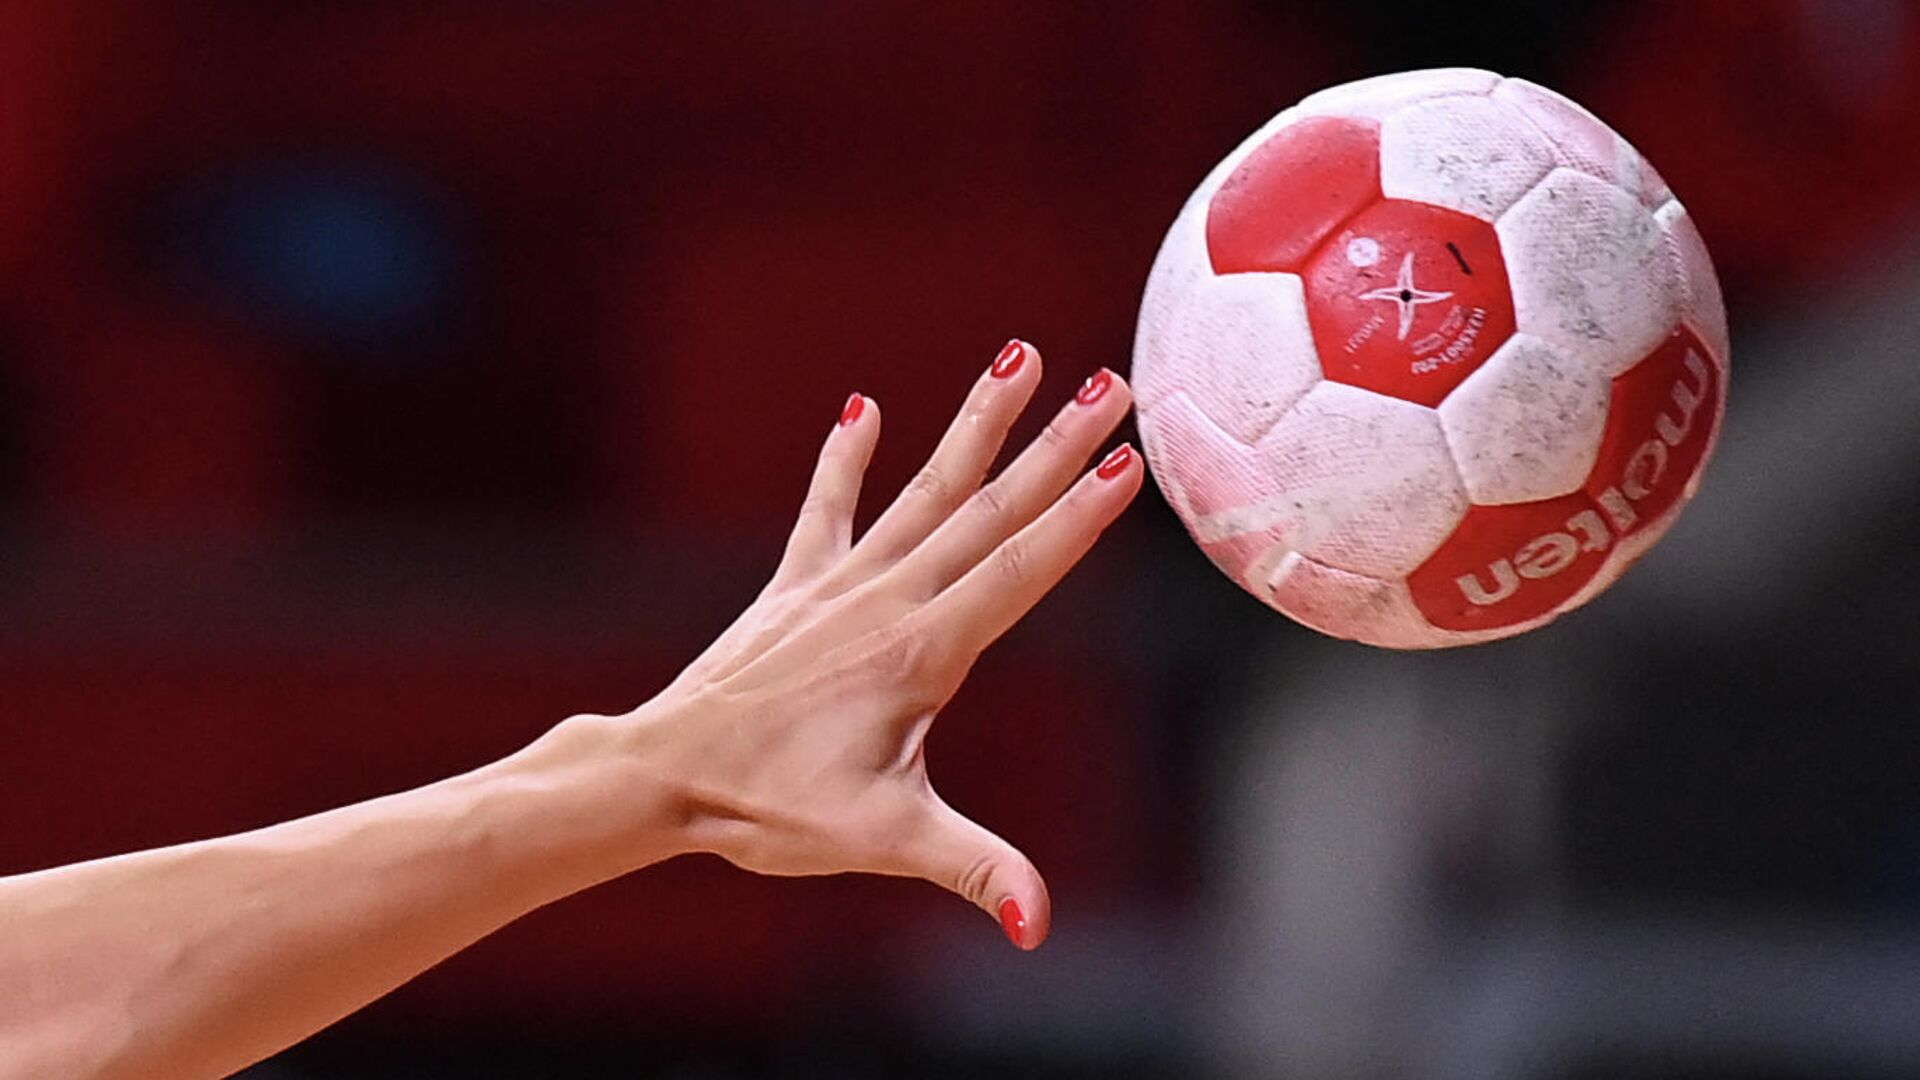 A handball player passes the ball during the women's preliminary round group A handball match between Japan and Montenegro of the Tokyo 2020 Olympic Games at the Yoyogi National Stadium in Tokyo on July 27, 2021. (Photo by Daniel LEAL-OLIVAS / AFP) - РИА Новости, 1920, 02.08.2021